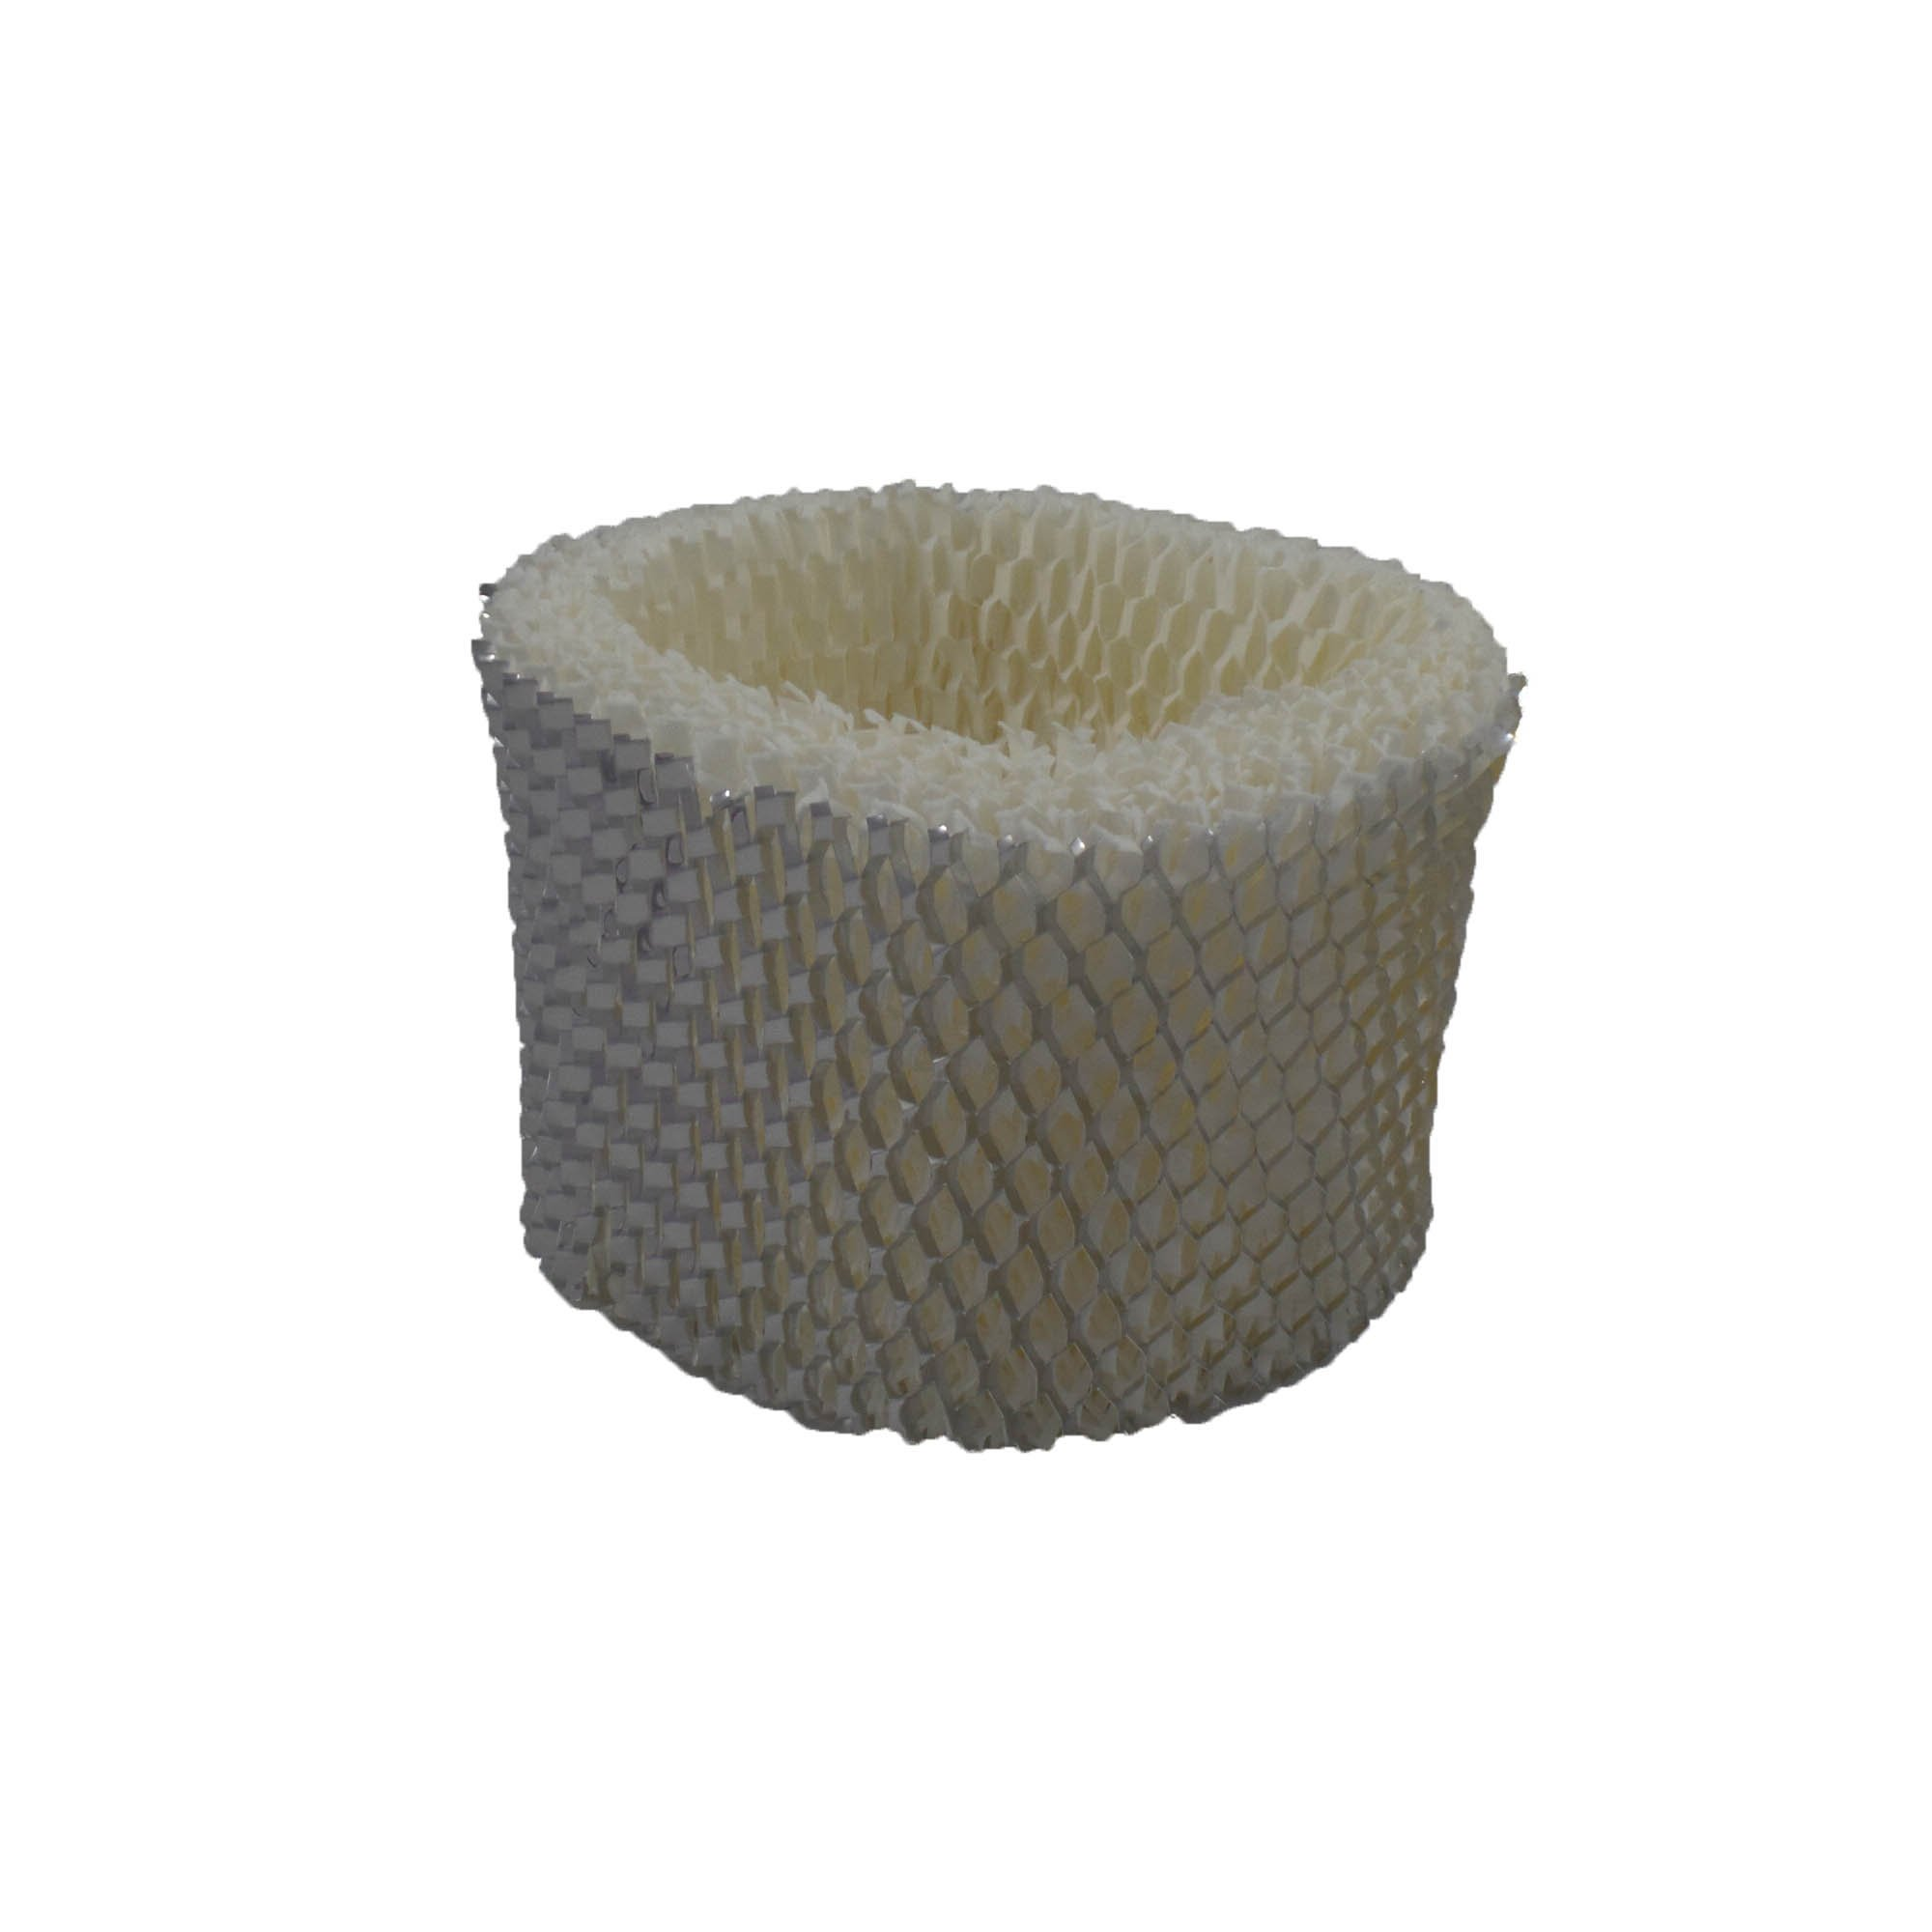 Air Filter Factory Compatible Replacement For Honeywell HCM-300T, HCM-350, HCM-710 Humidifer Filter